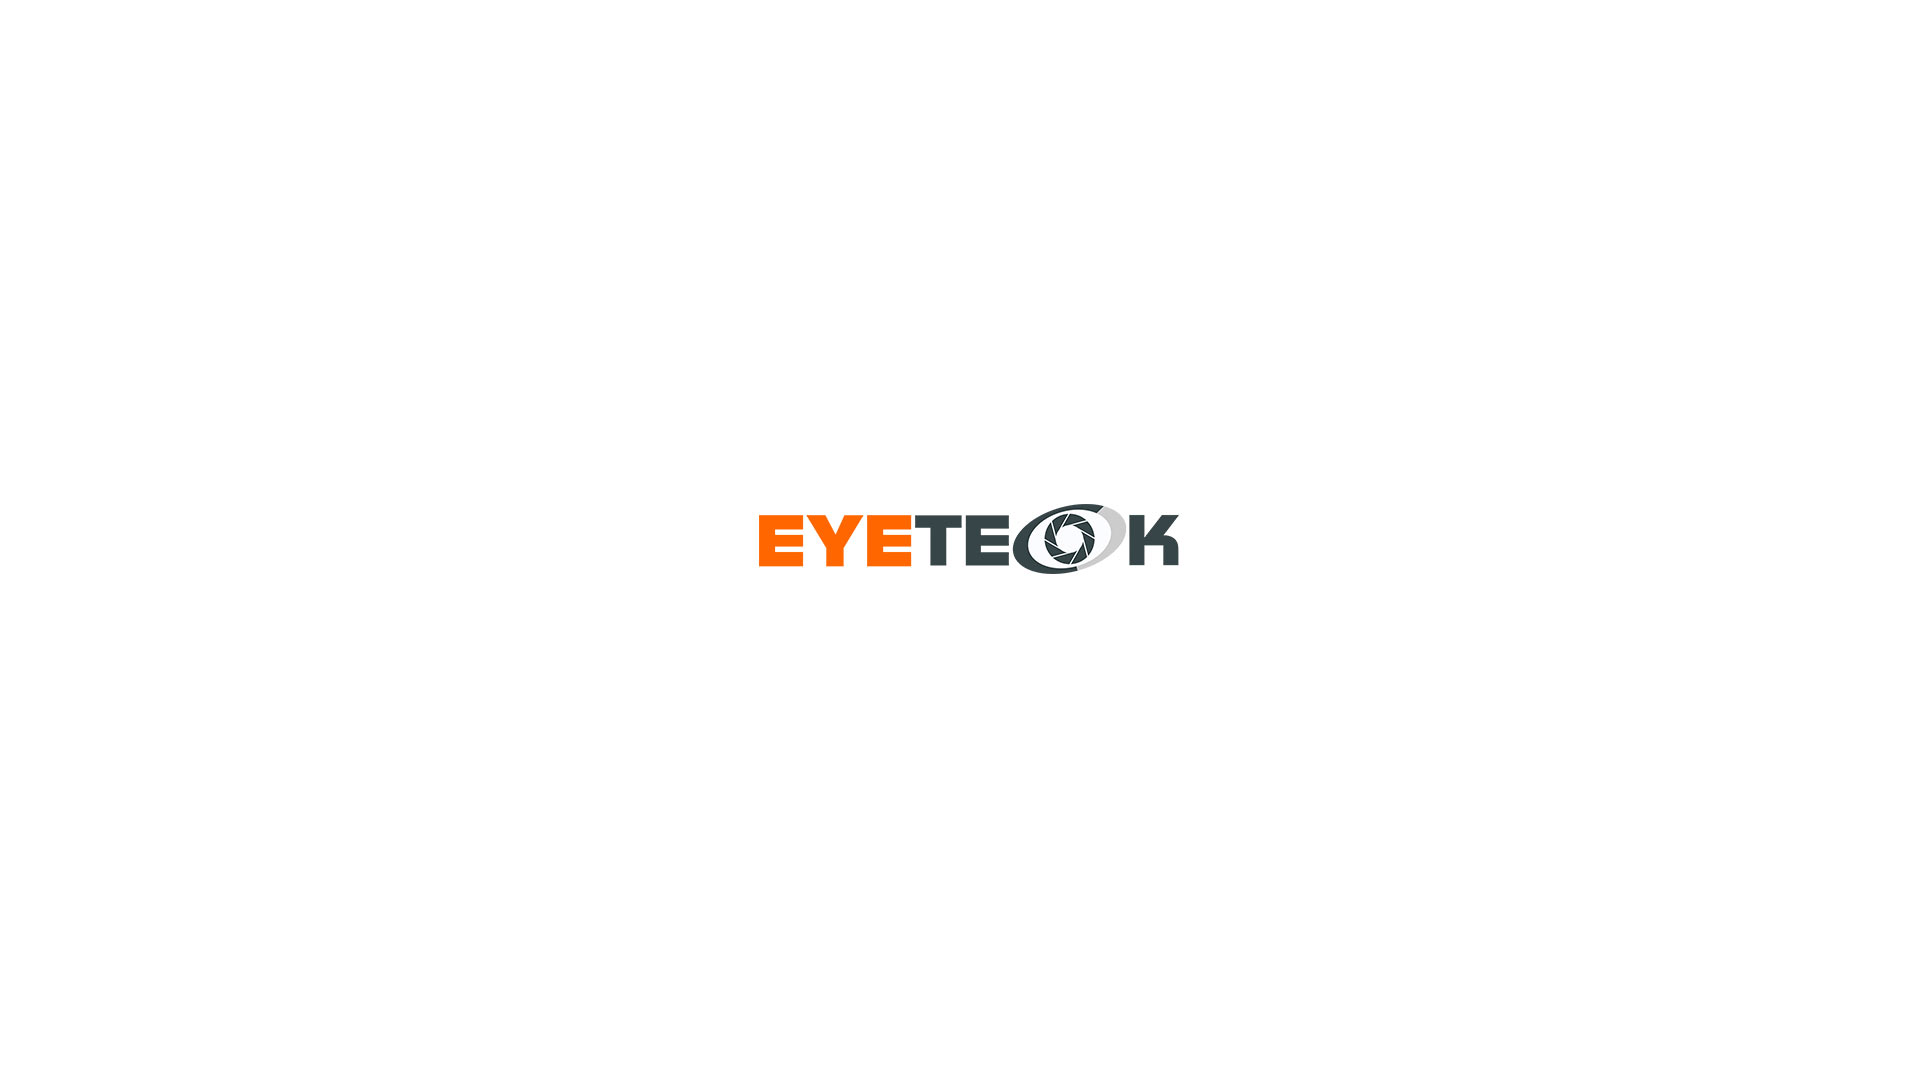 eye-teck-bourges